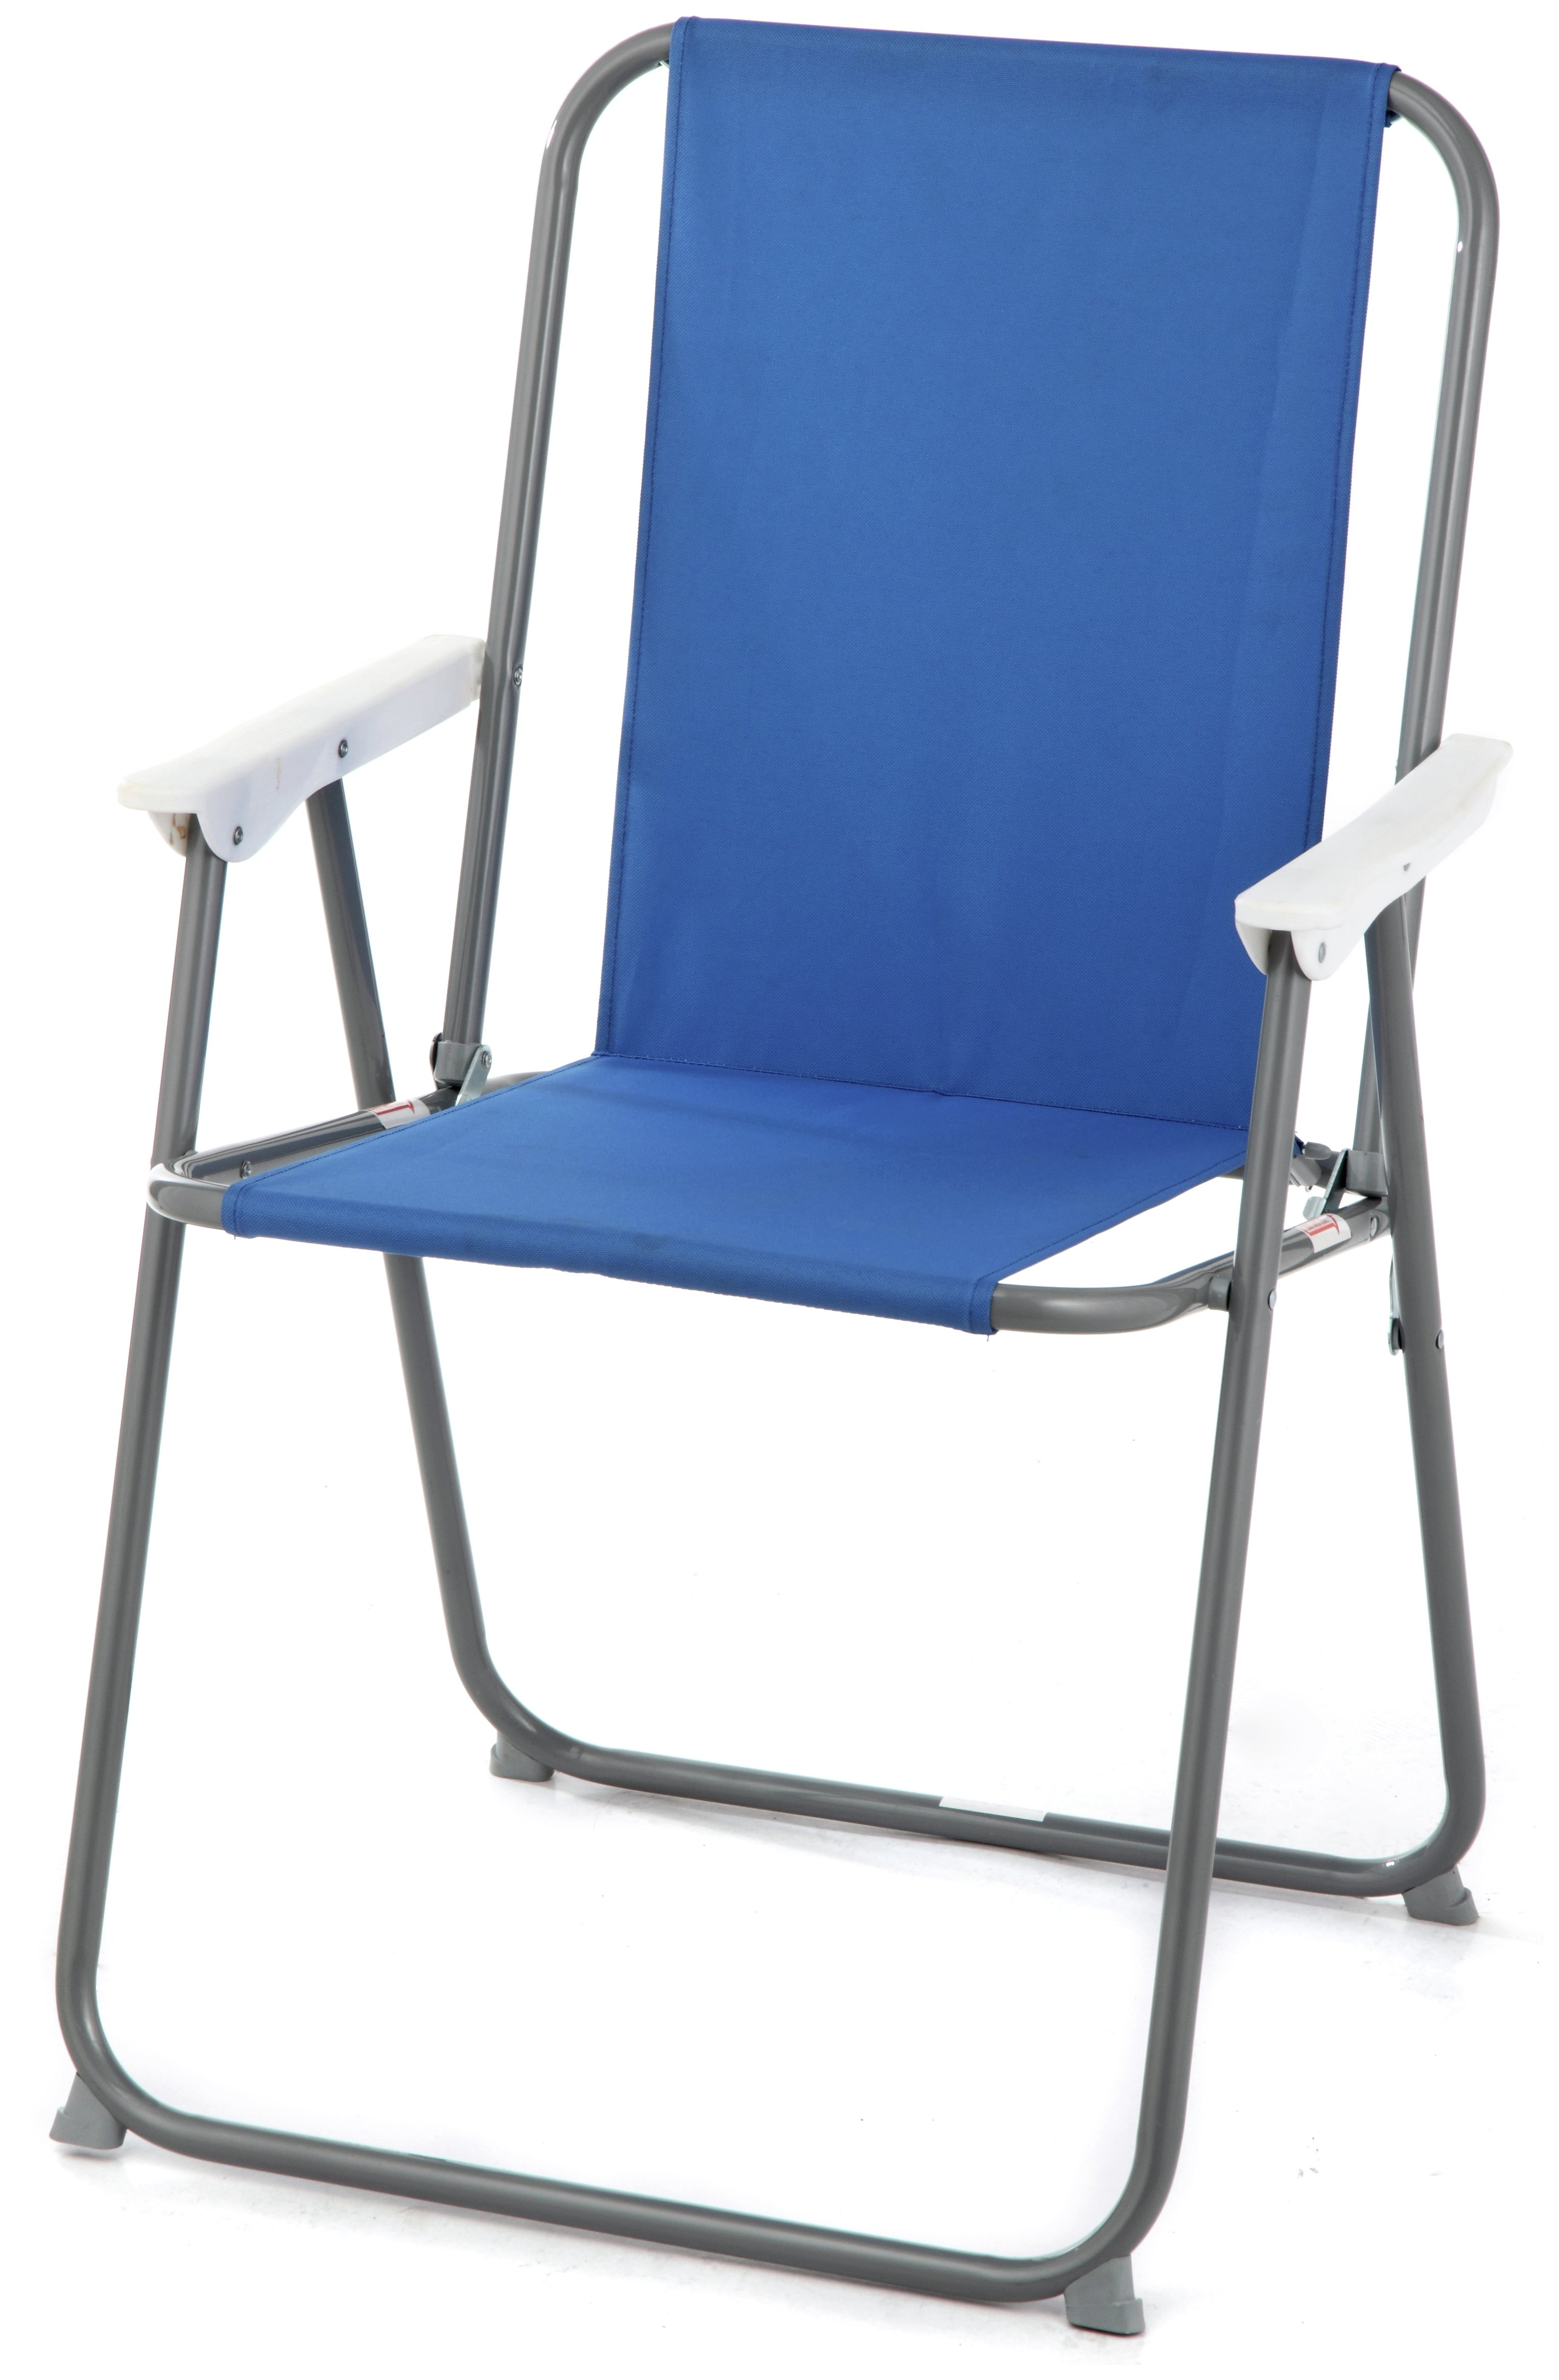 Image of Picnic Chair - Blue